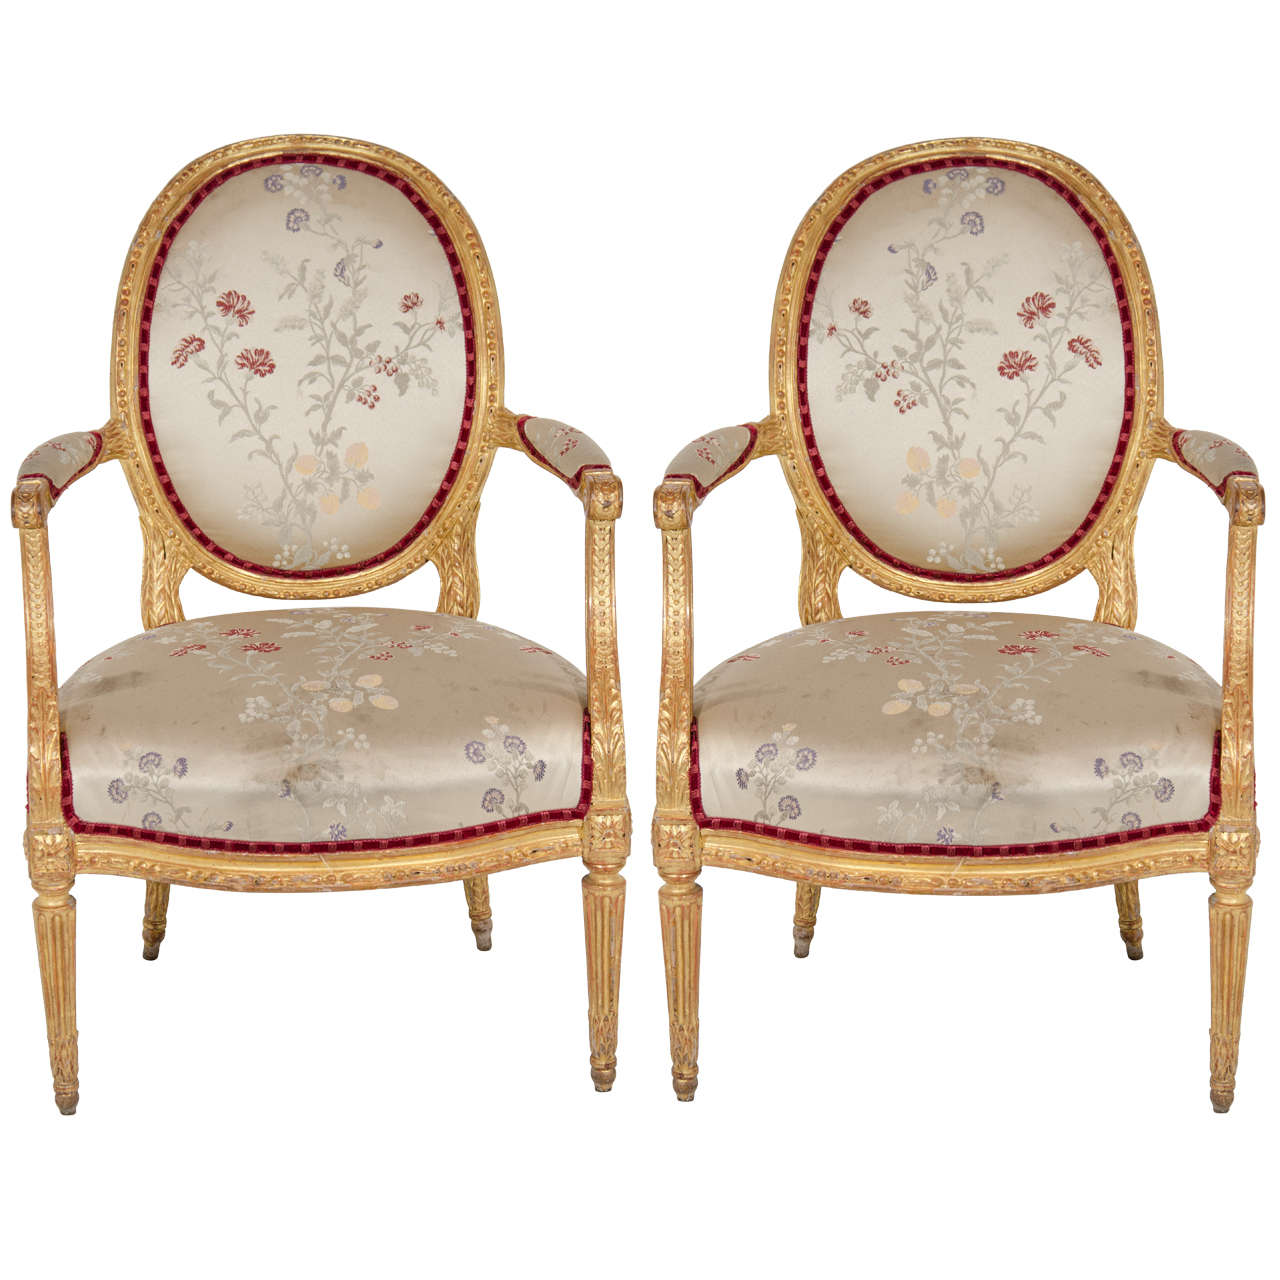 Pair of Antique French Louis XVI Carved Giltwood Armchairs